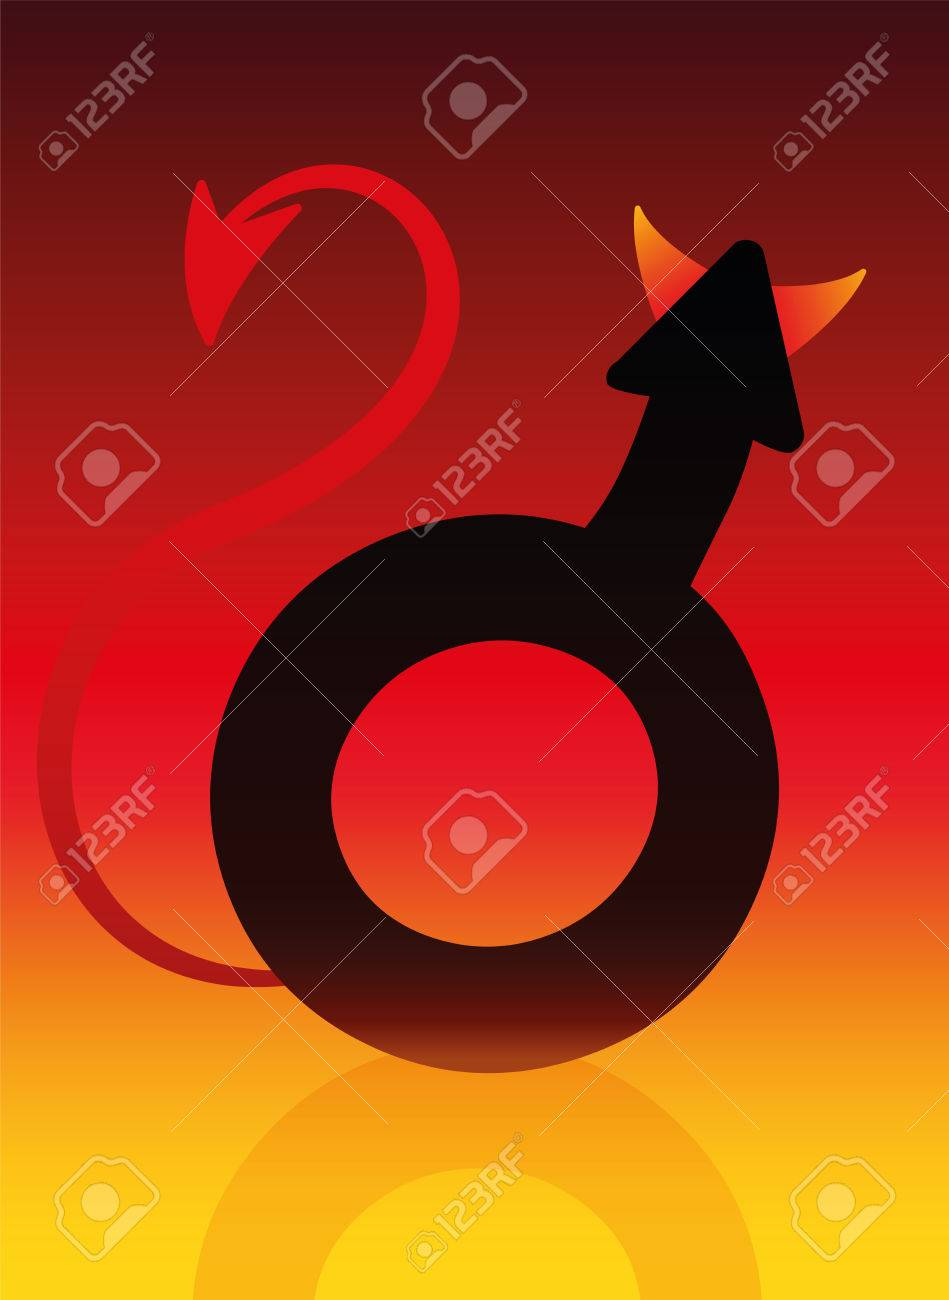 Male devil symbol with tails and horns on blazing background as a male devil symbol with tails and horns on blazing background as a symbol for a bad buycottarizona